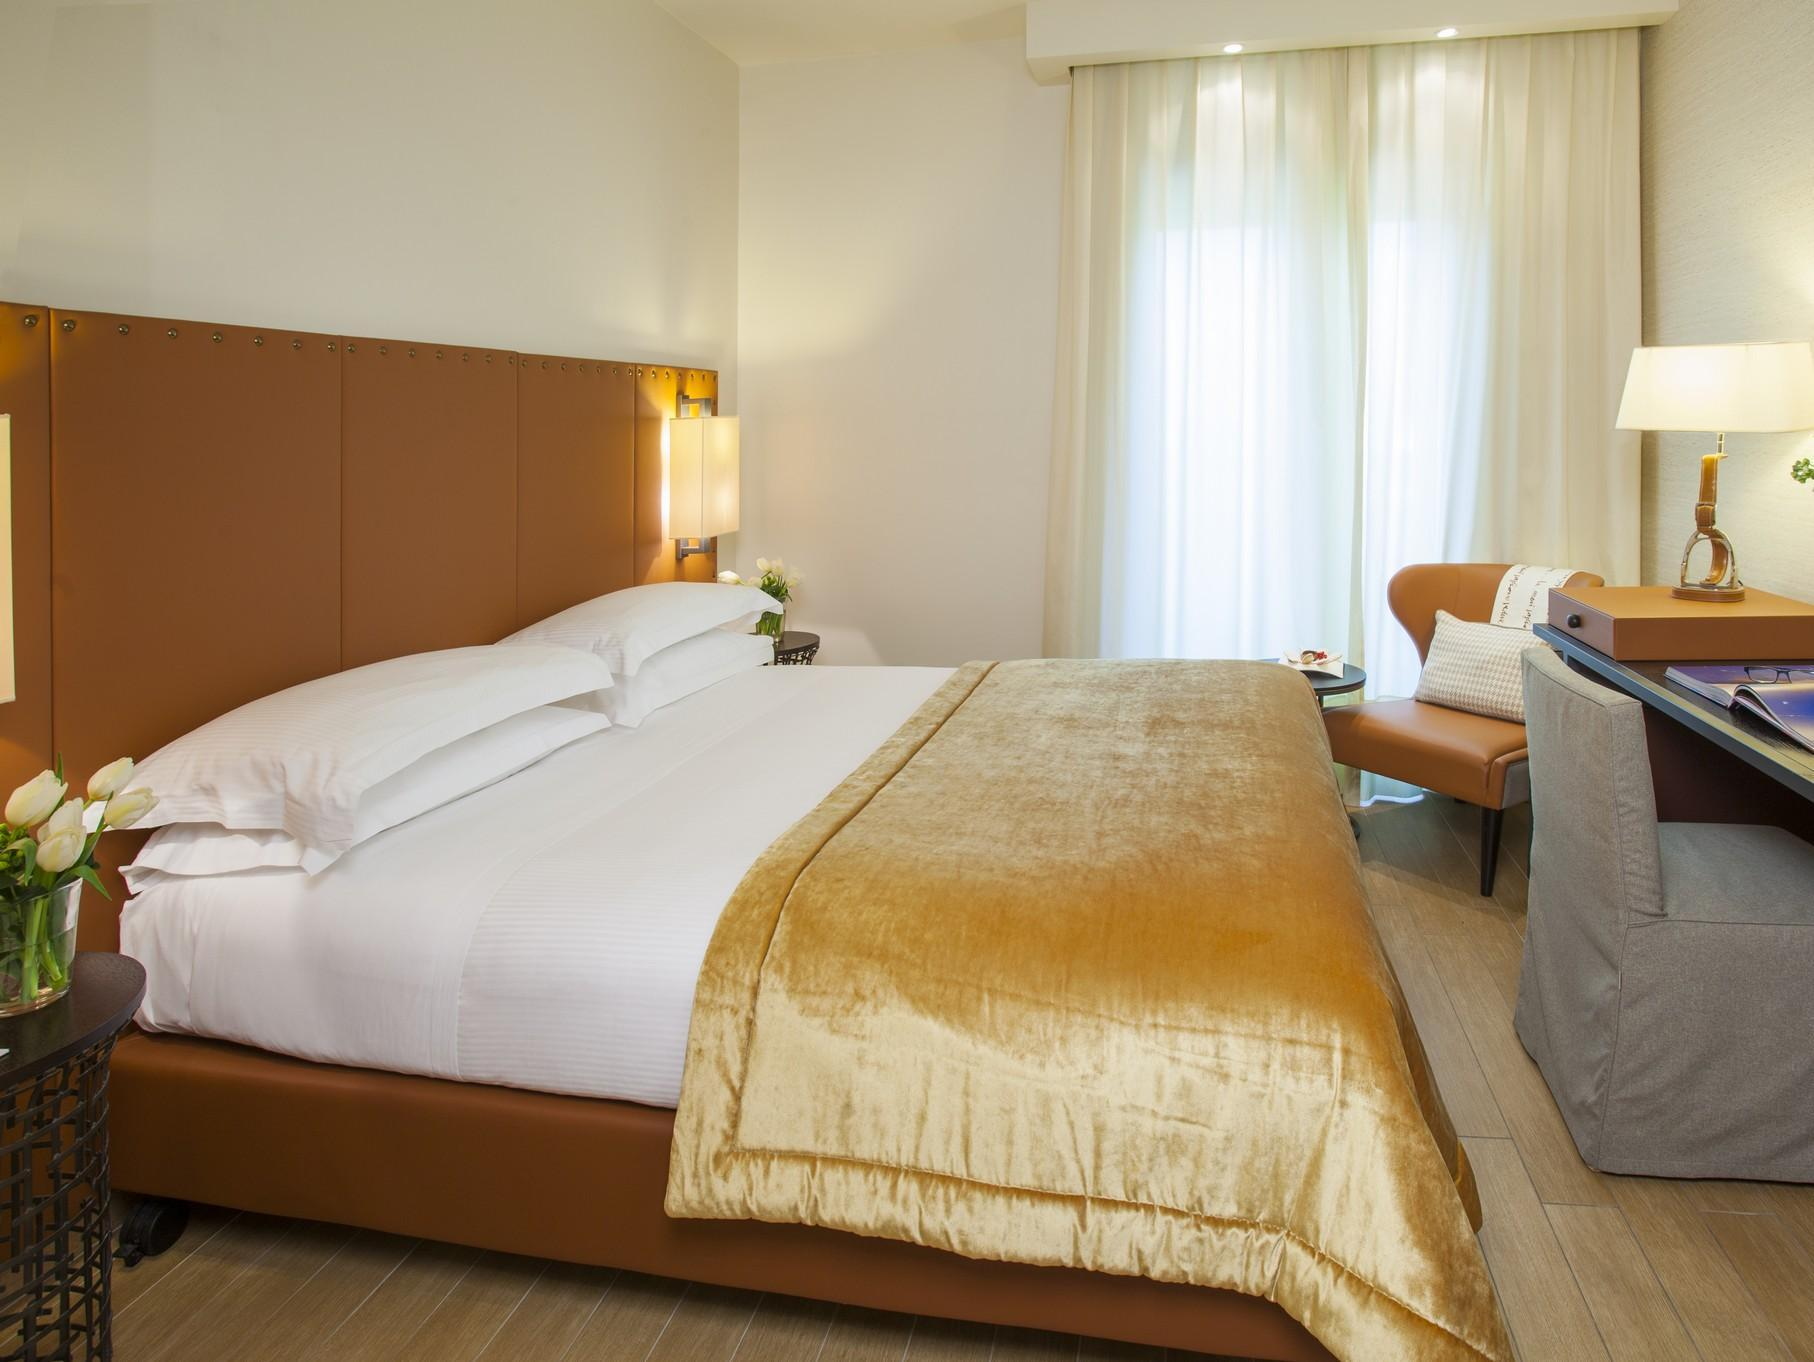 Oferta Especial - Habitación Doble o Twin (Special Offer - Double or Twin Room)